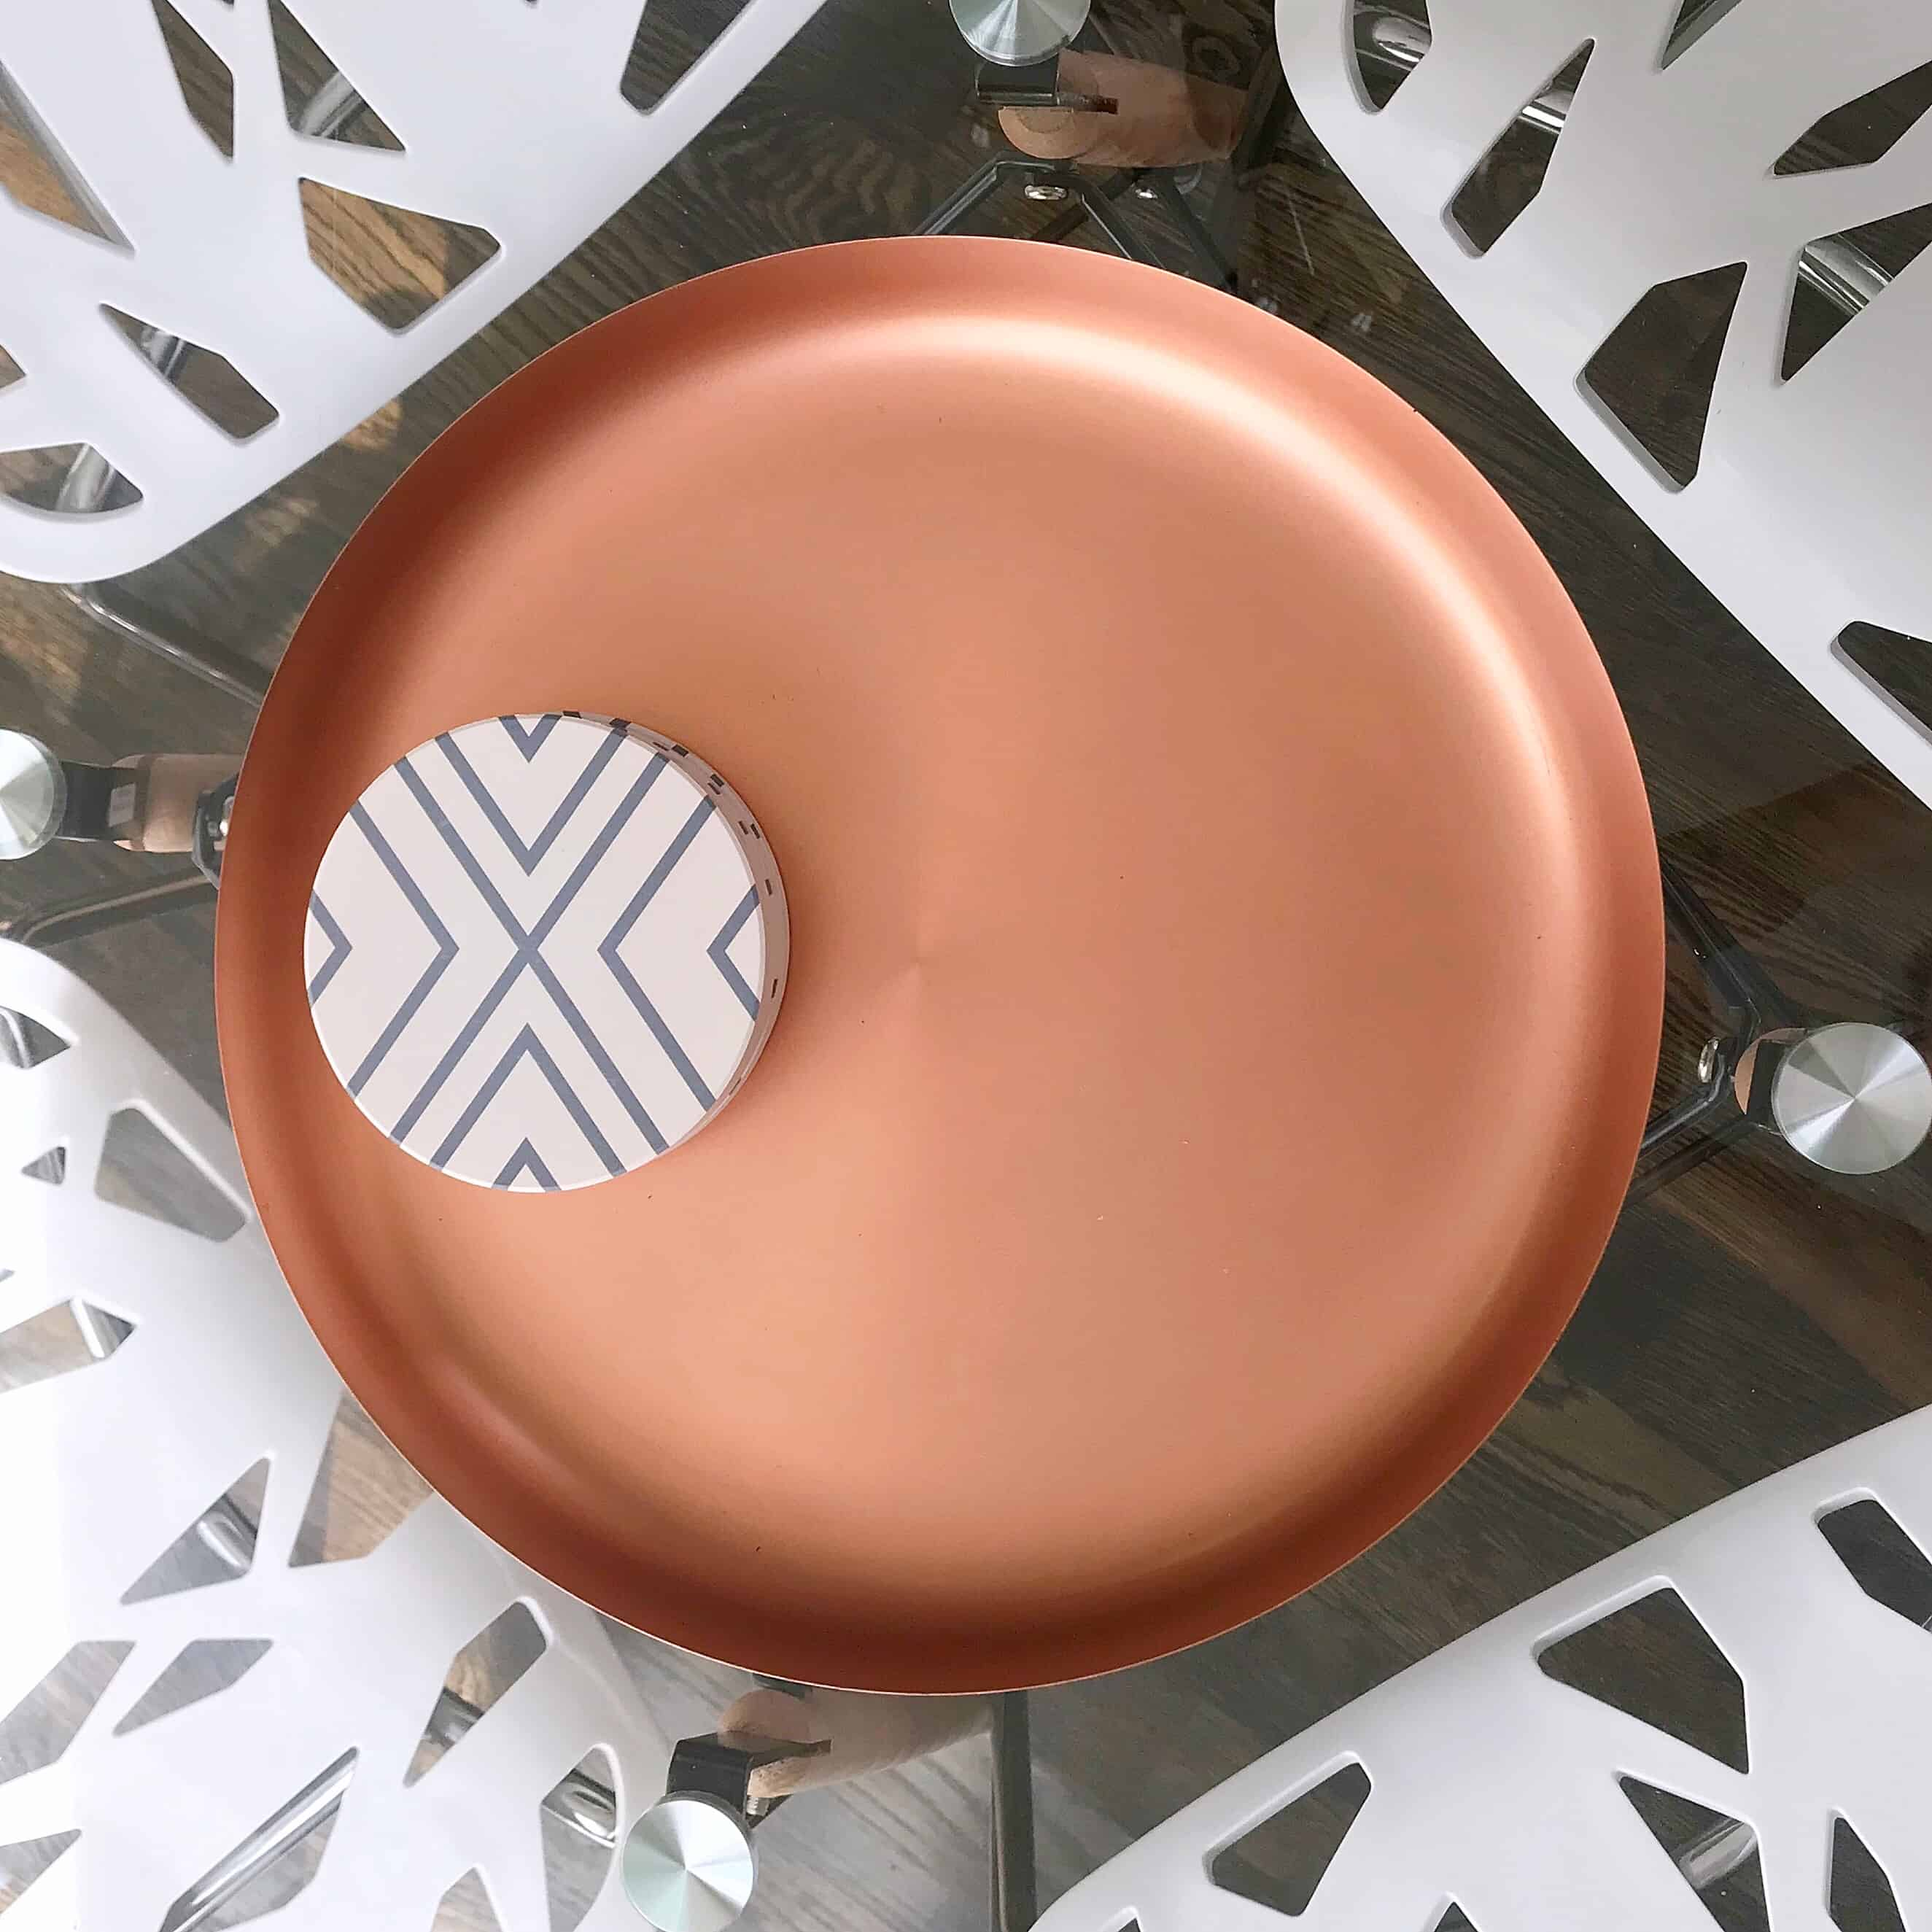 Glass table with copper tray and white chairs below